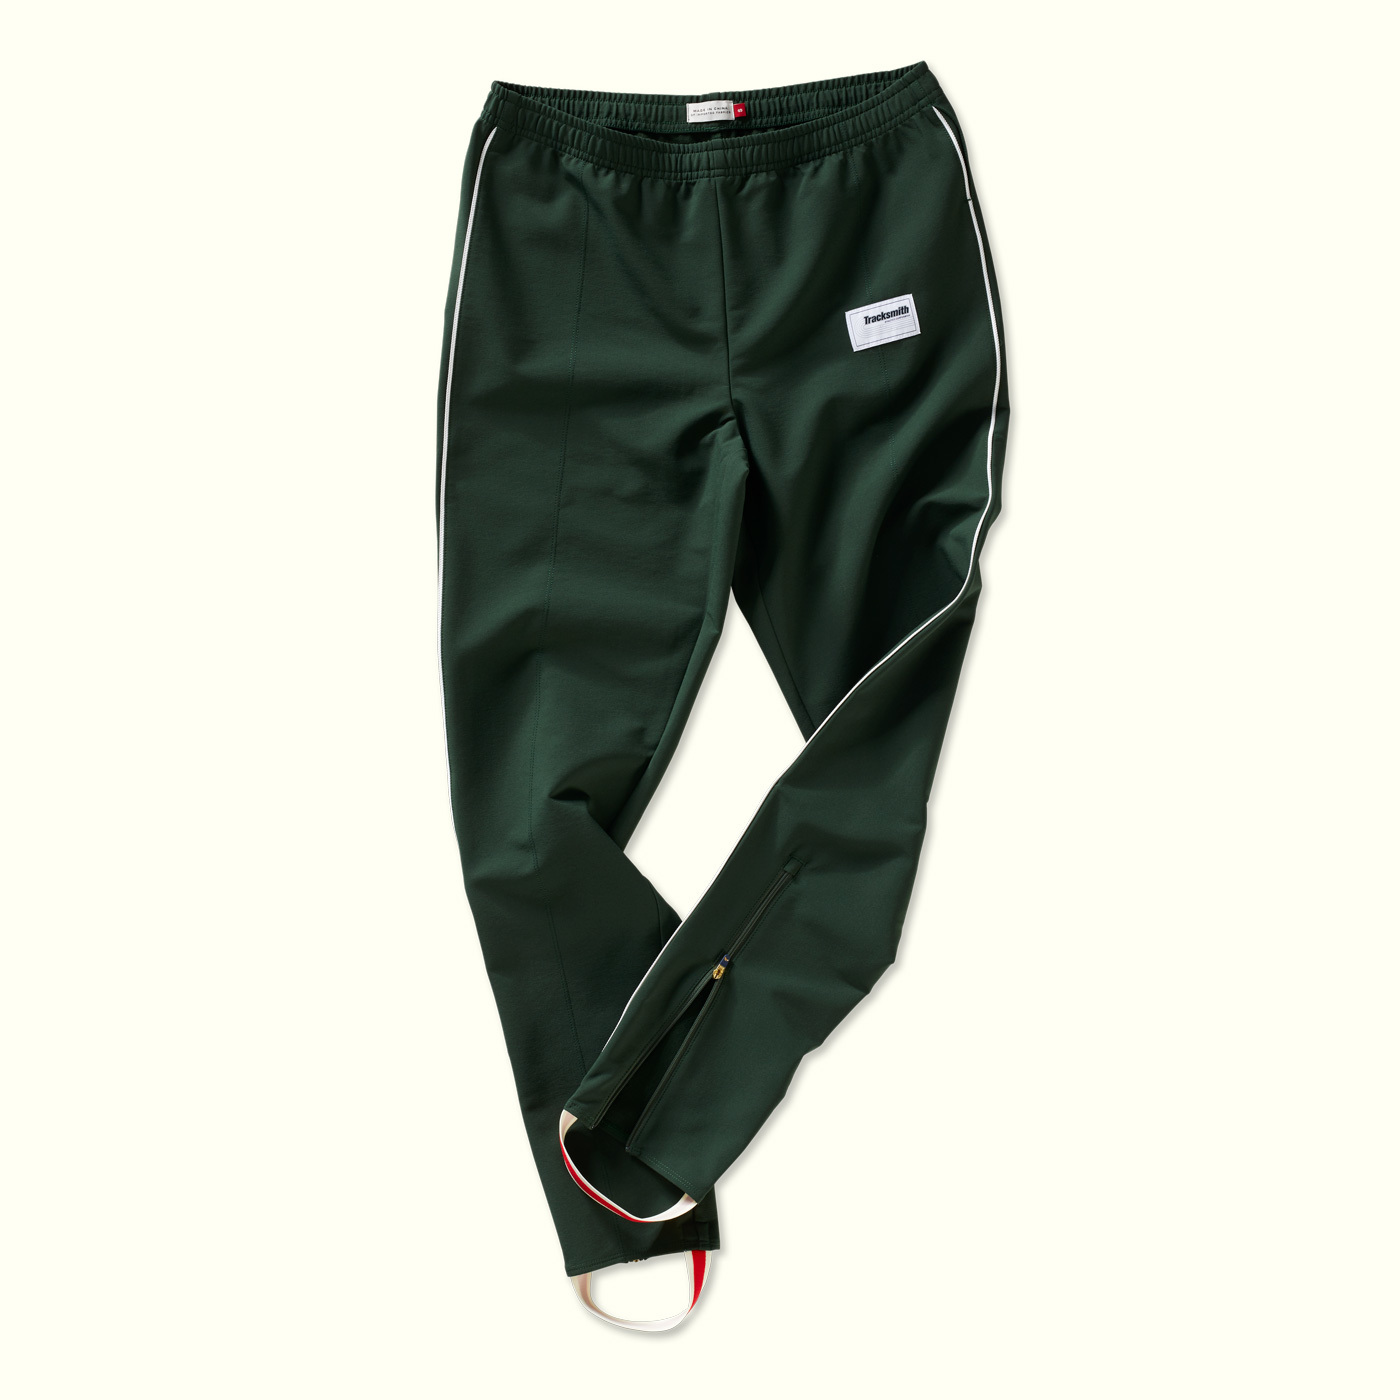 Men's Bislett pants